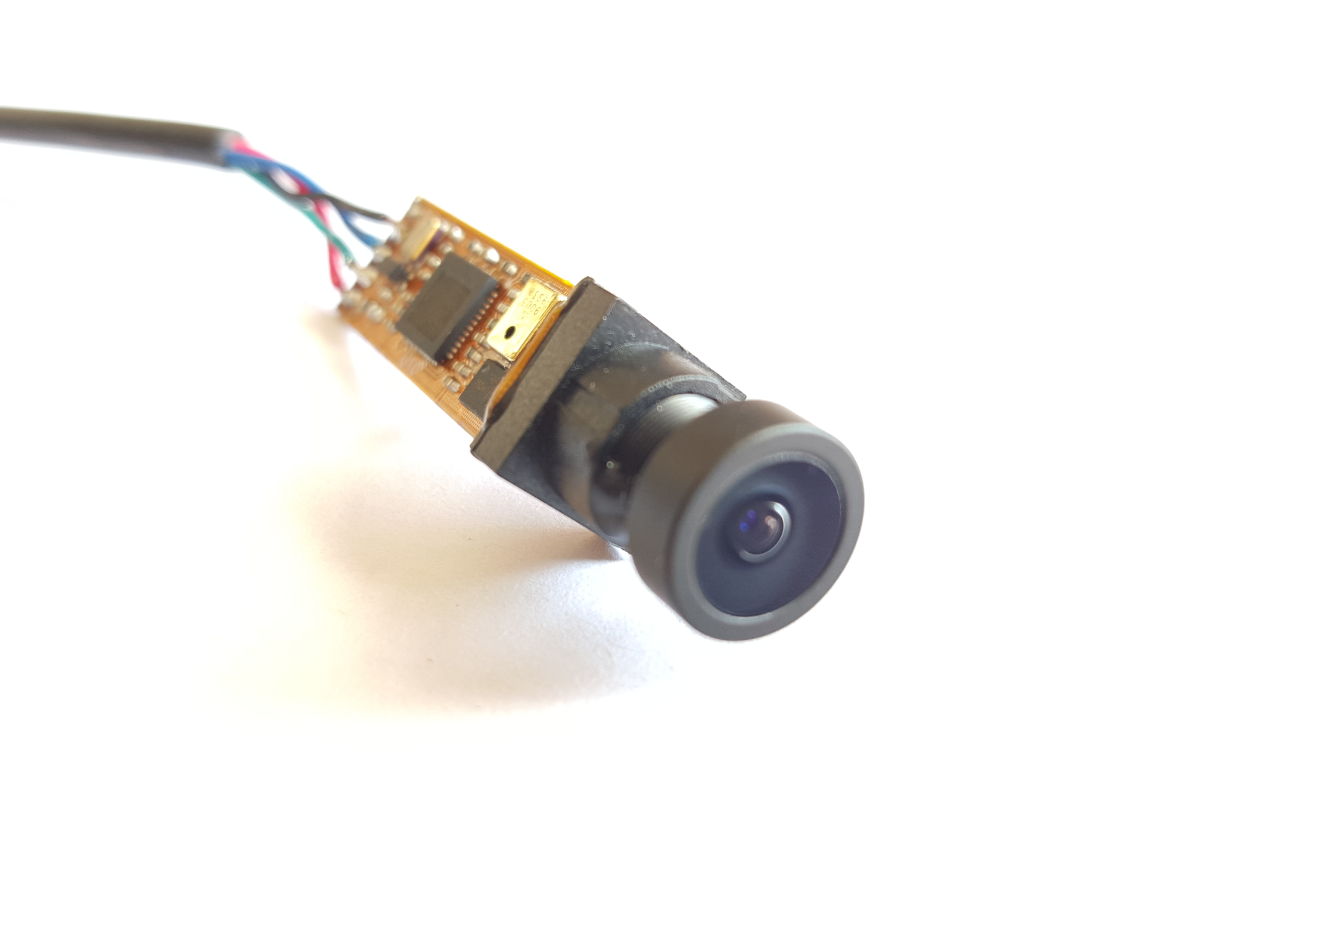 8MP endoscope camera module with Sony IMX179 sensor